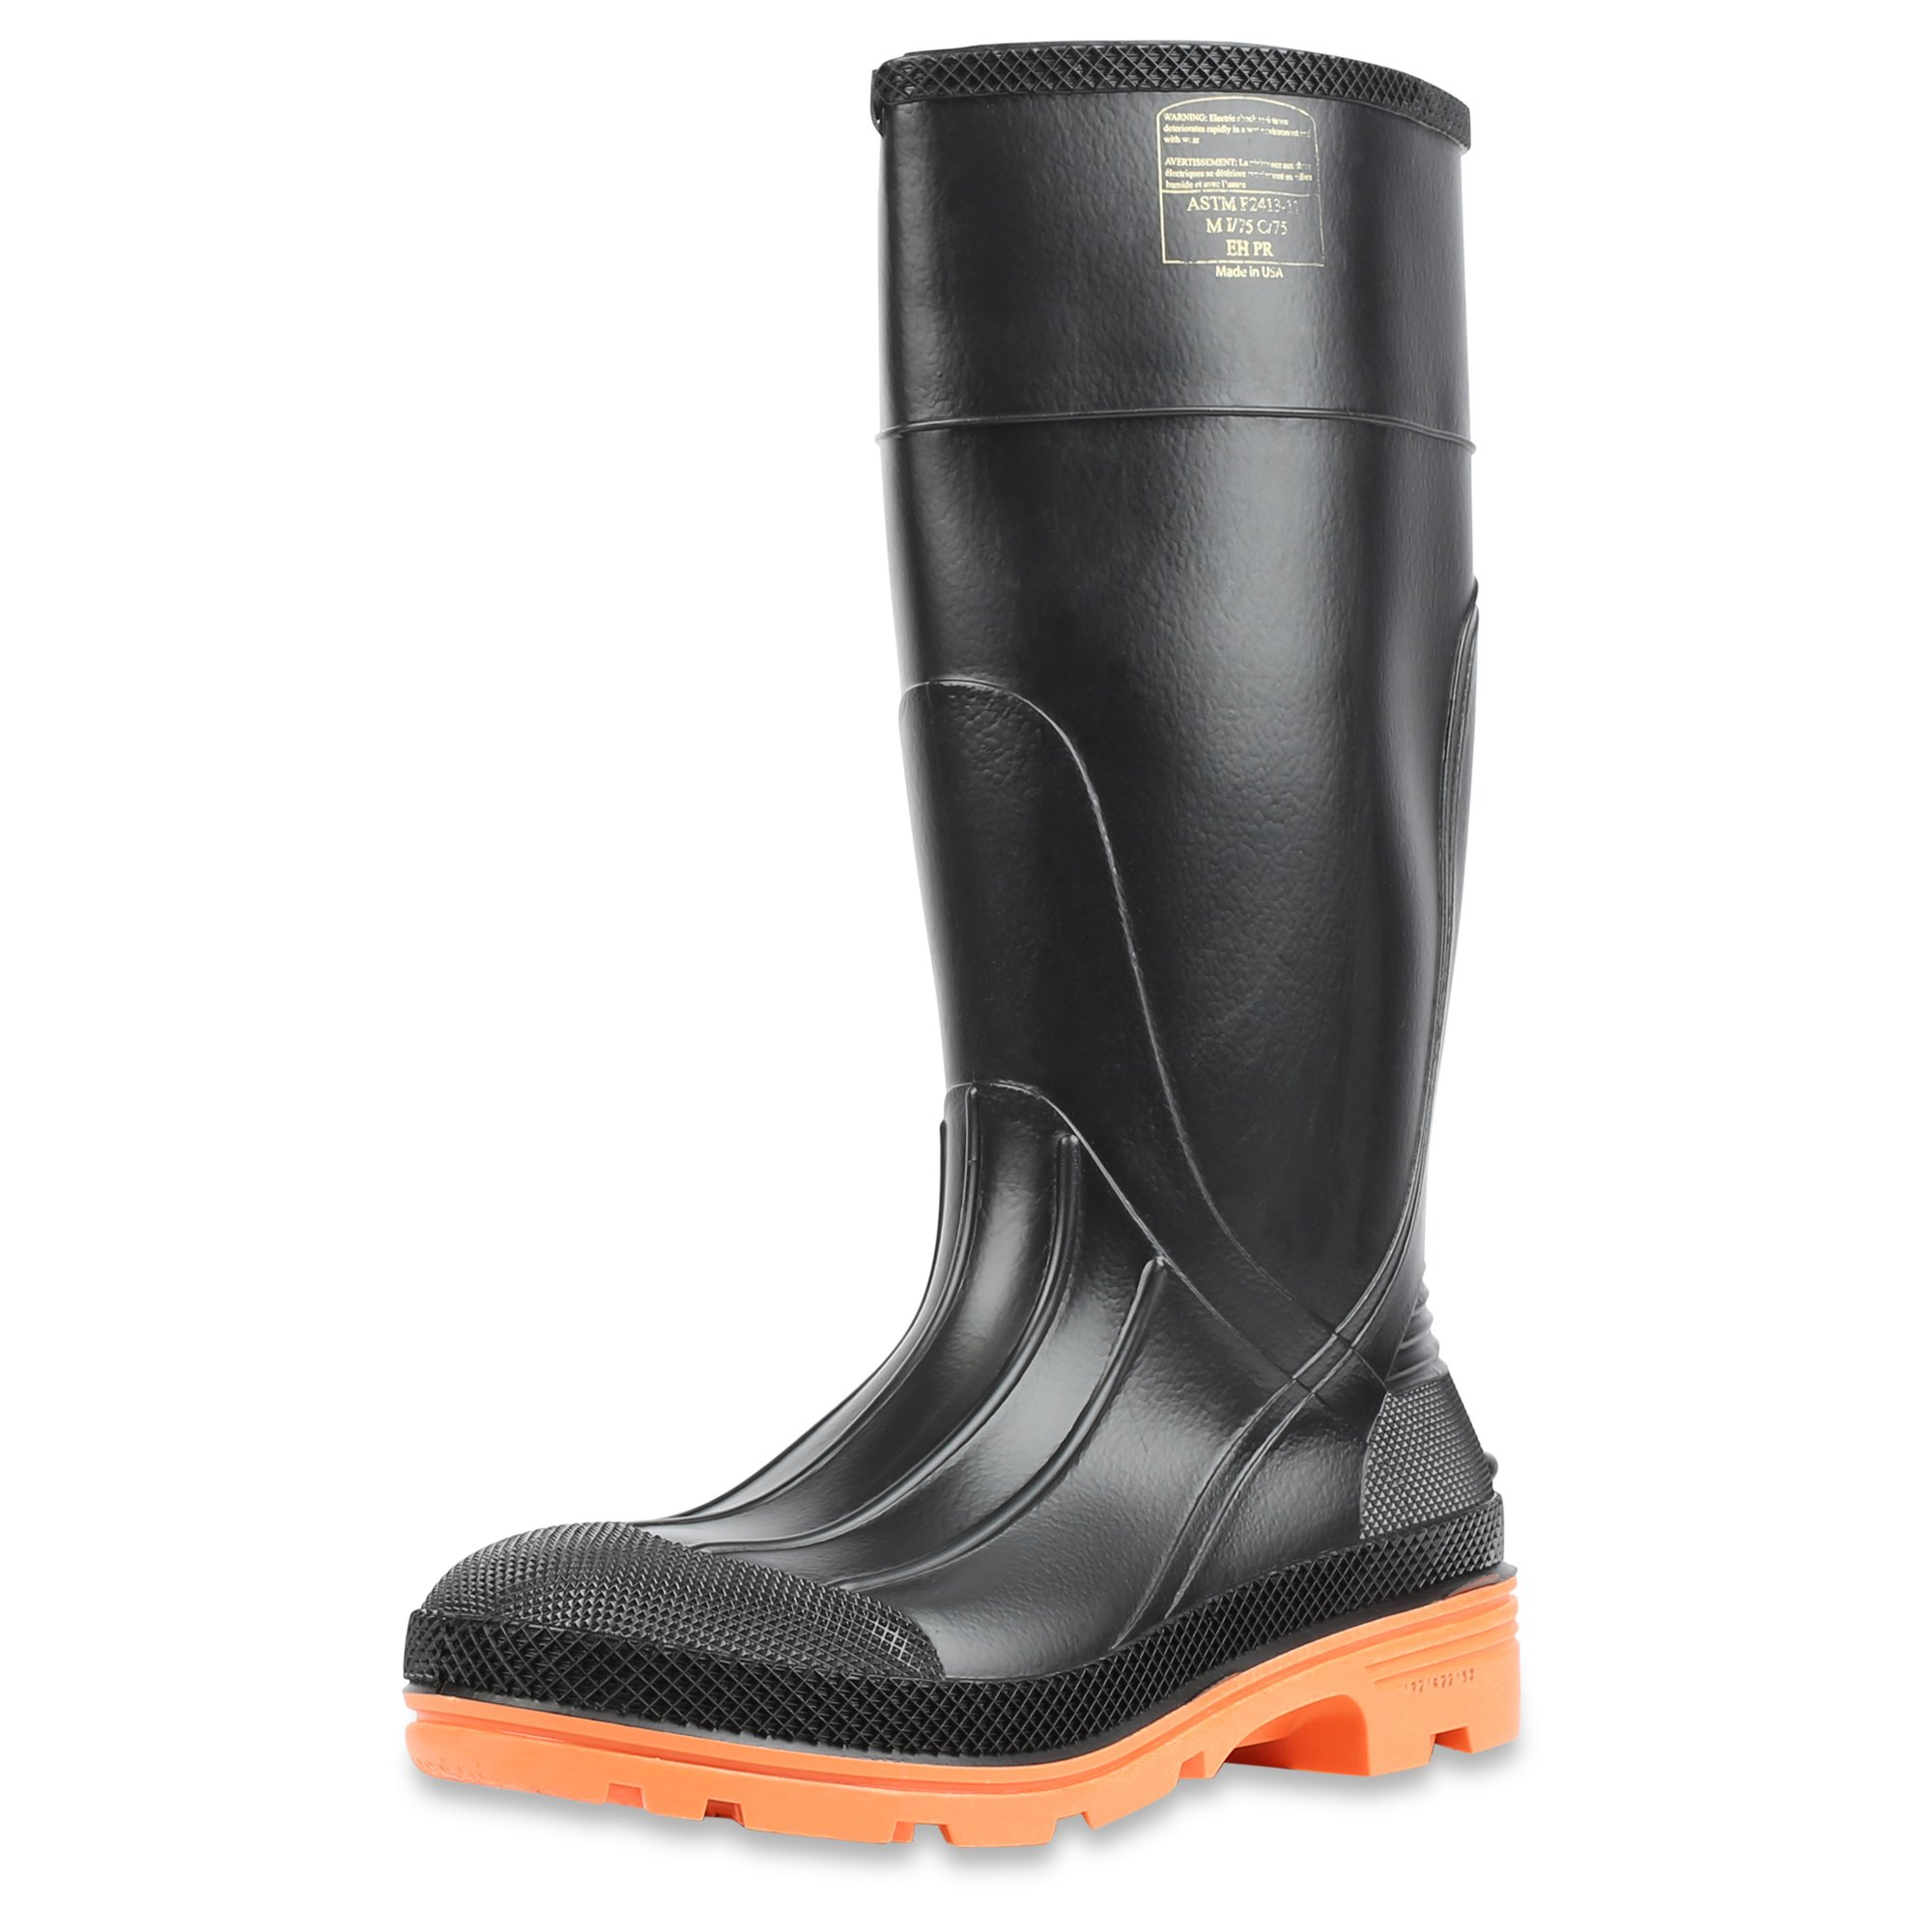 Servus PRM 15'' PVC  Men's Work Boots with Steel Toe and Steel Midsole, Black & Orange (75145C) by Servus (Image #1)